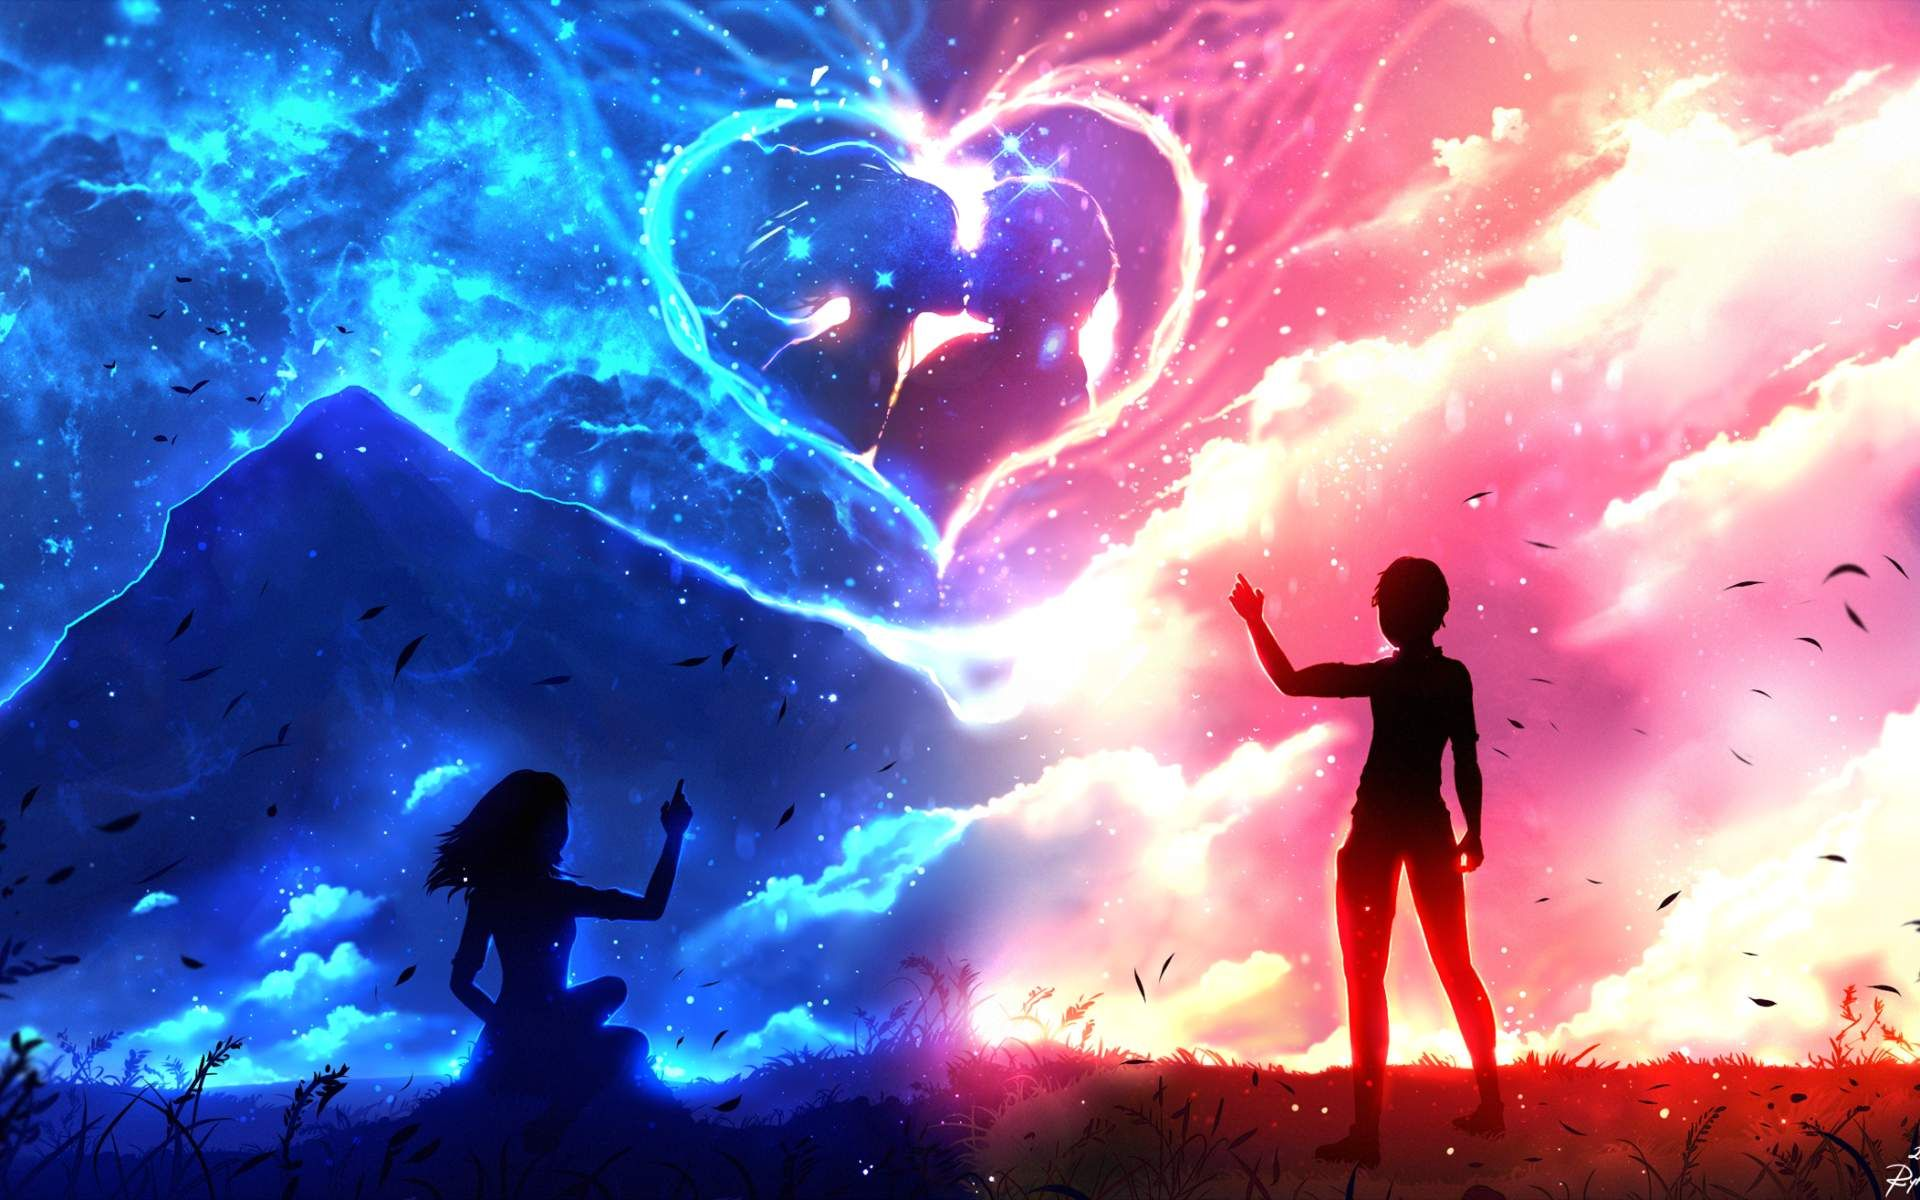 Love couple Hd Live Wallpaper : Love animated couple wallpapers cartoons hd 1024?768 Anime couple Wallpaper (52 Wallpapers ...